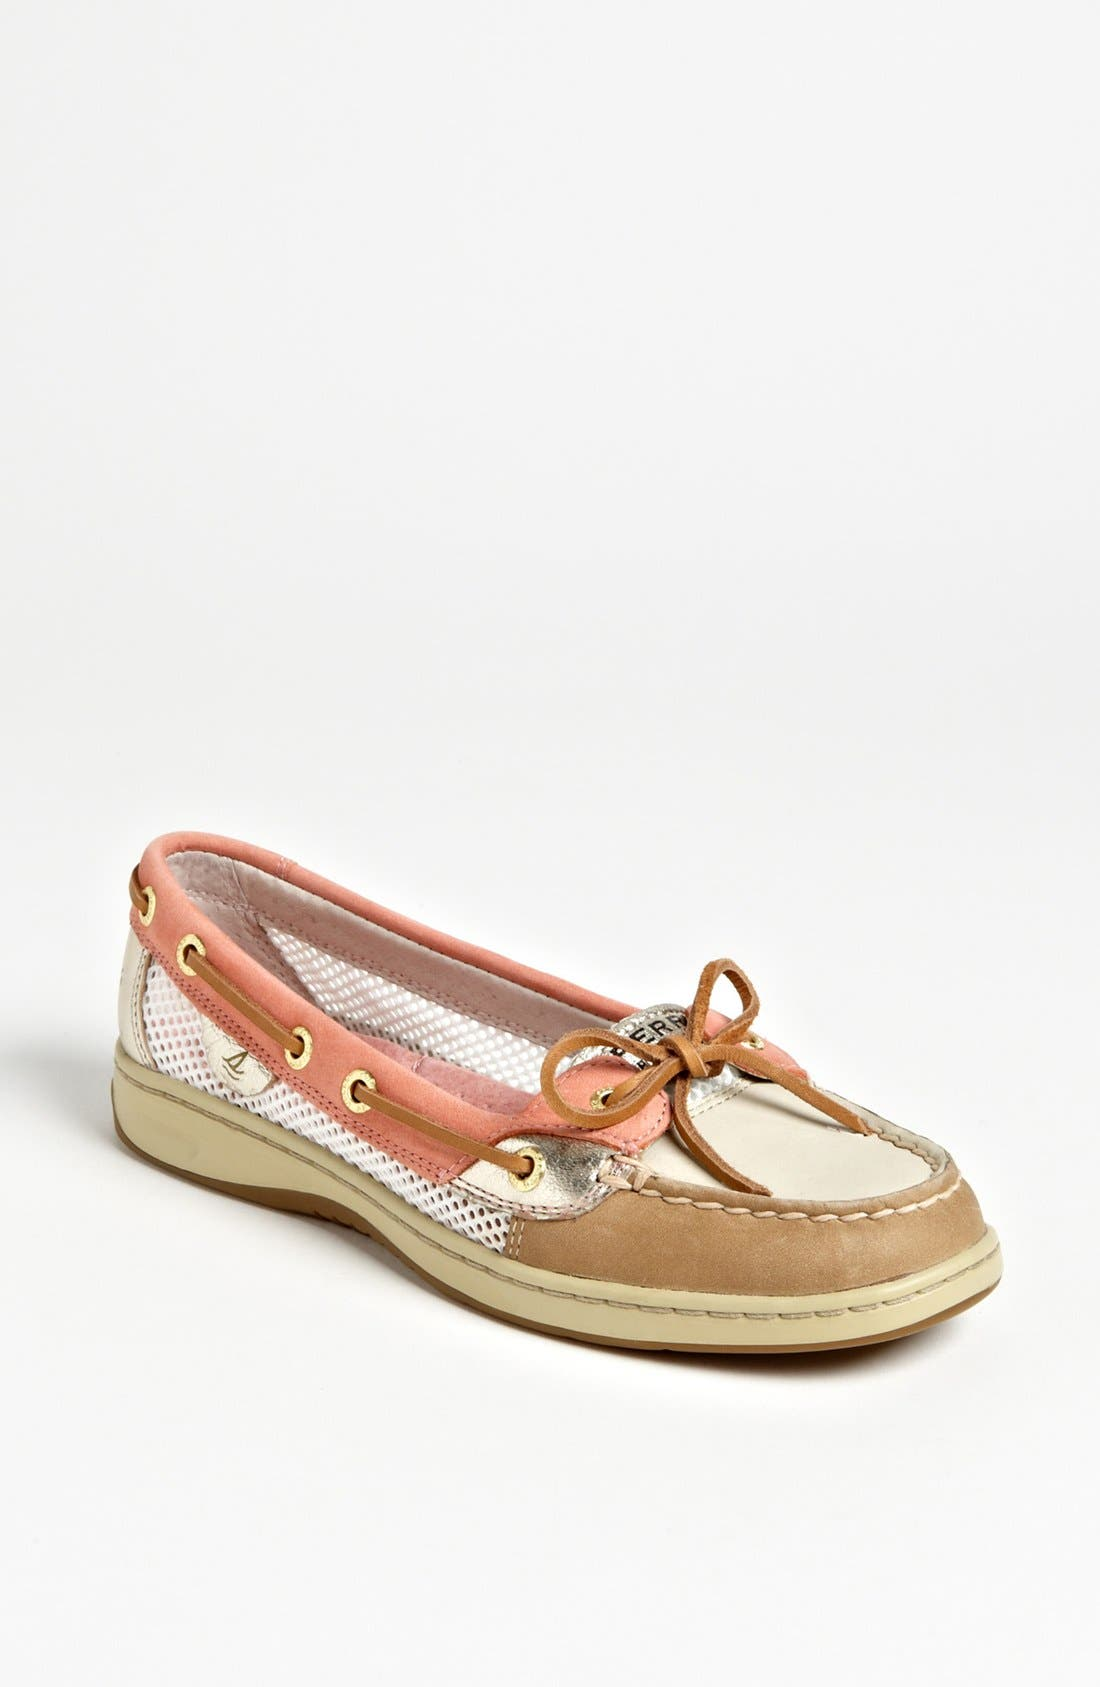 Alternate Image 1 Selected - Sperry Top-Sider® 'Angelfish' Boat Shoe (Exclusive Color)